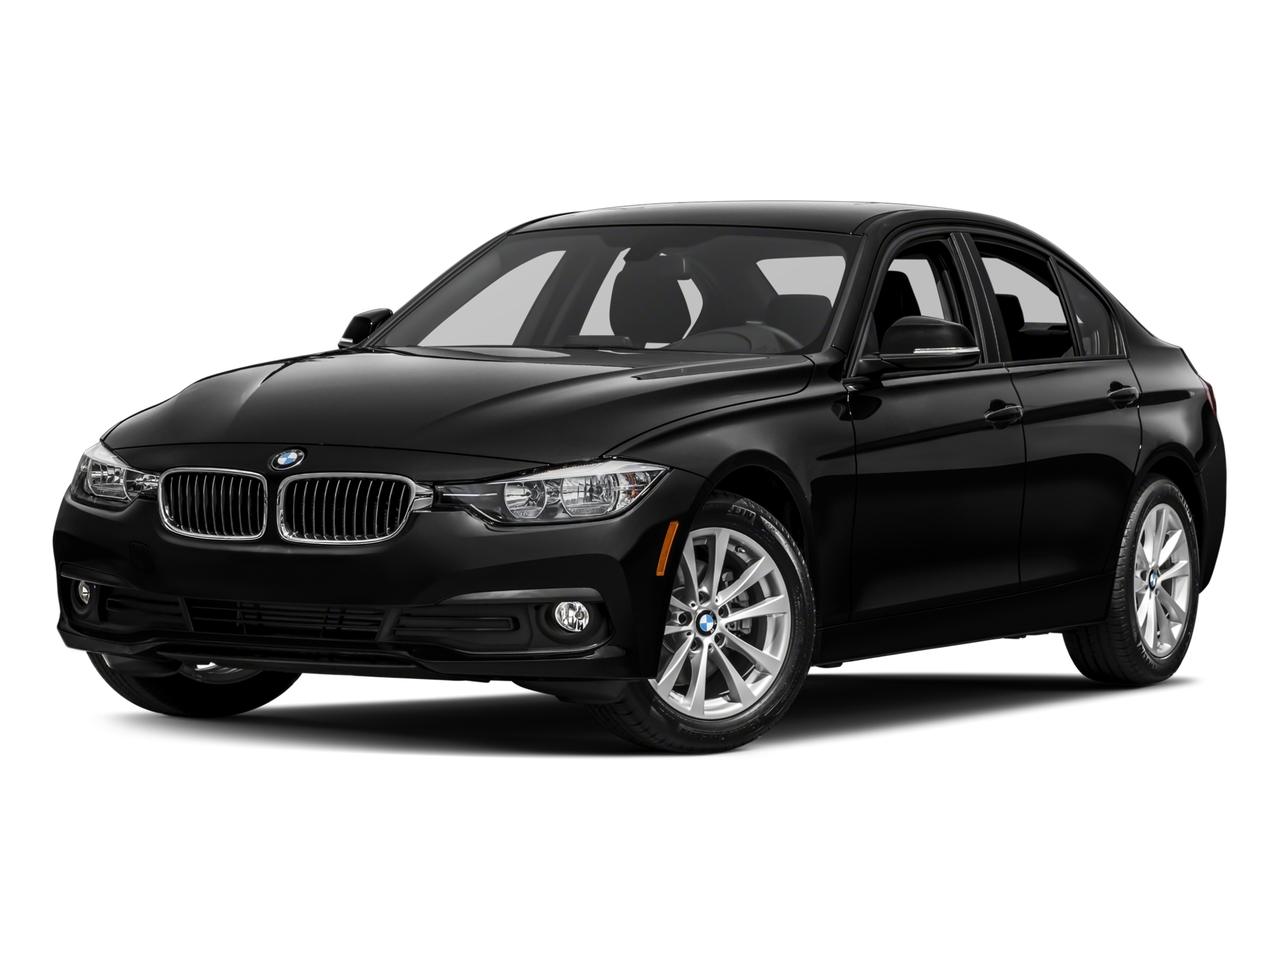 2017 BMW 3 Series - Chicago, IL